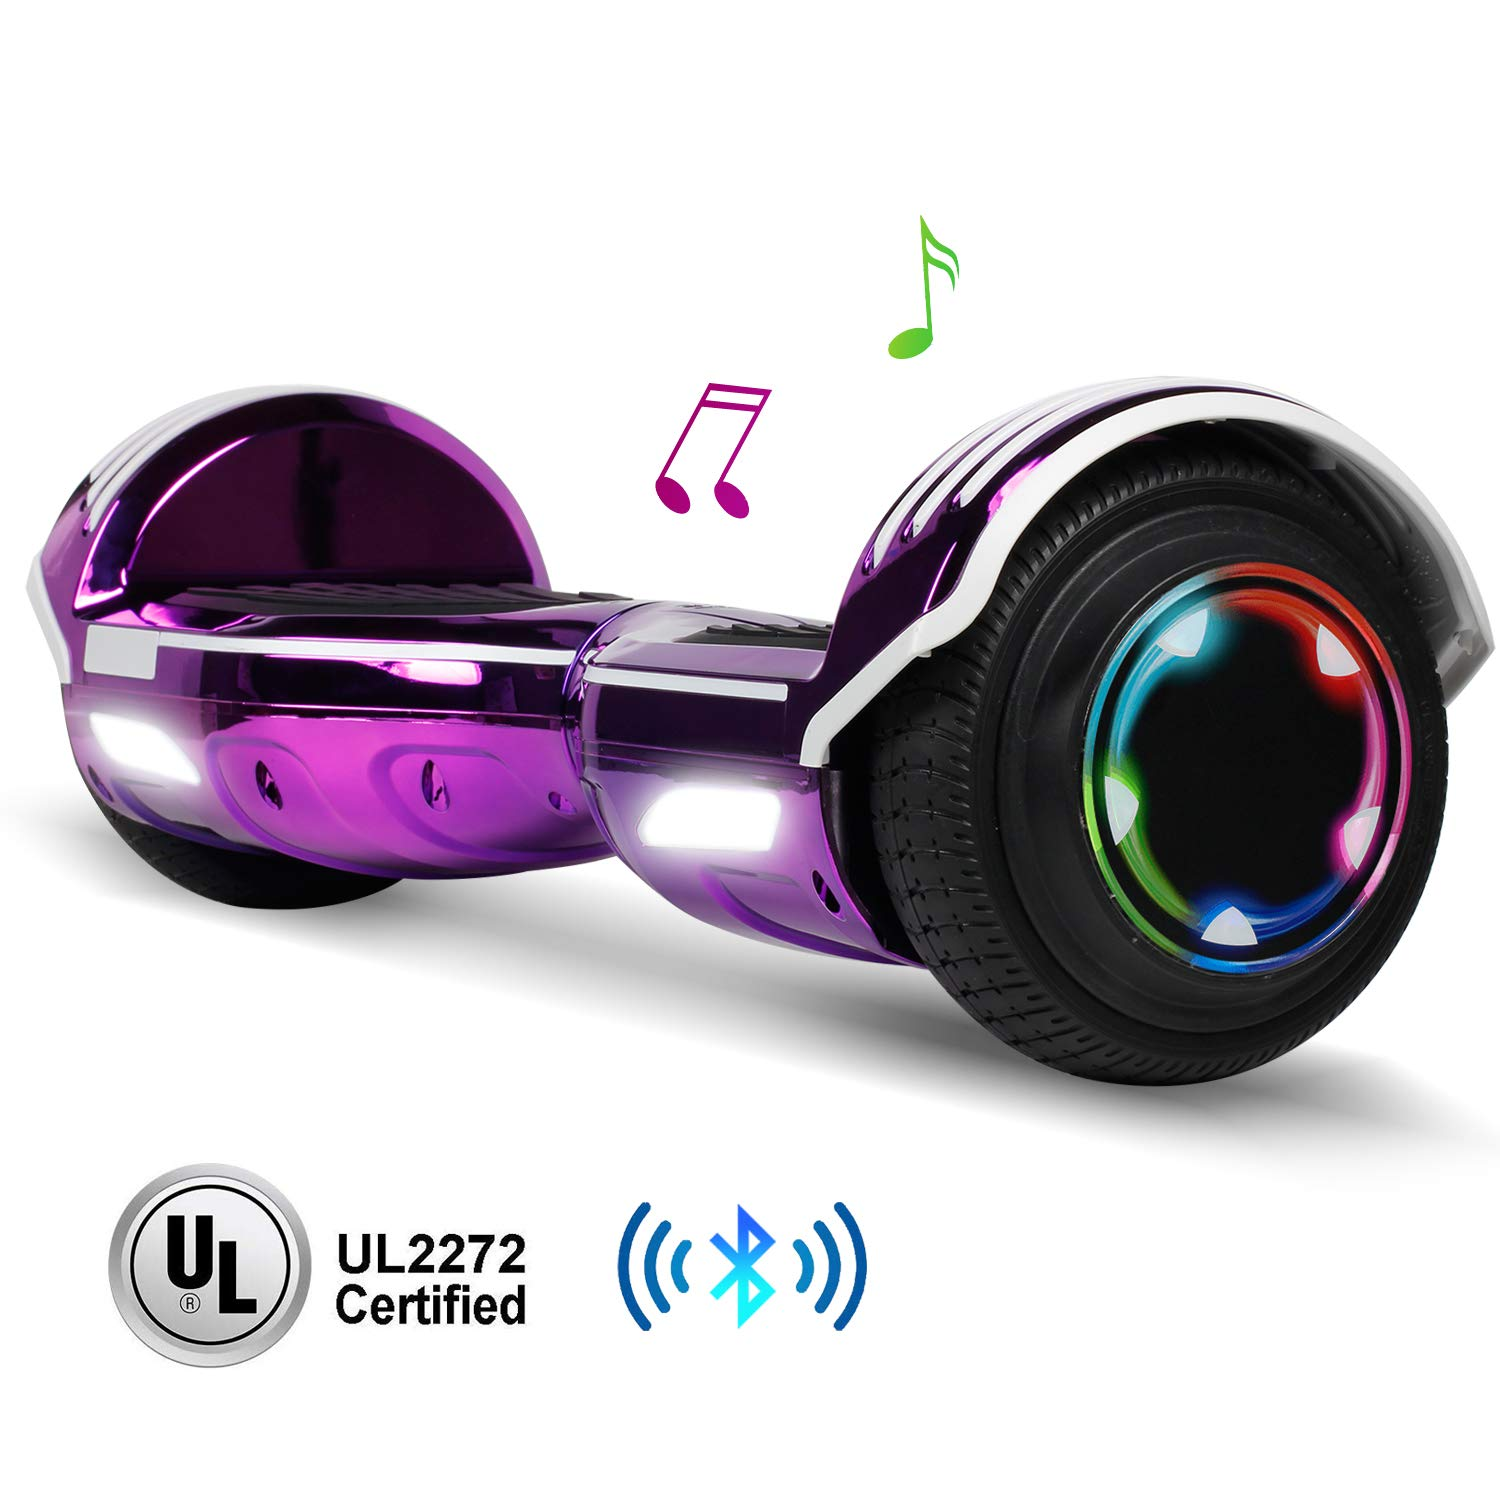 jolege 6.5'' Hoverboard for Kids Two-Wheel Self Balancing Electric Scooter Hover Board - UL2272 Certified by jolege